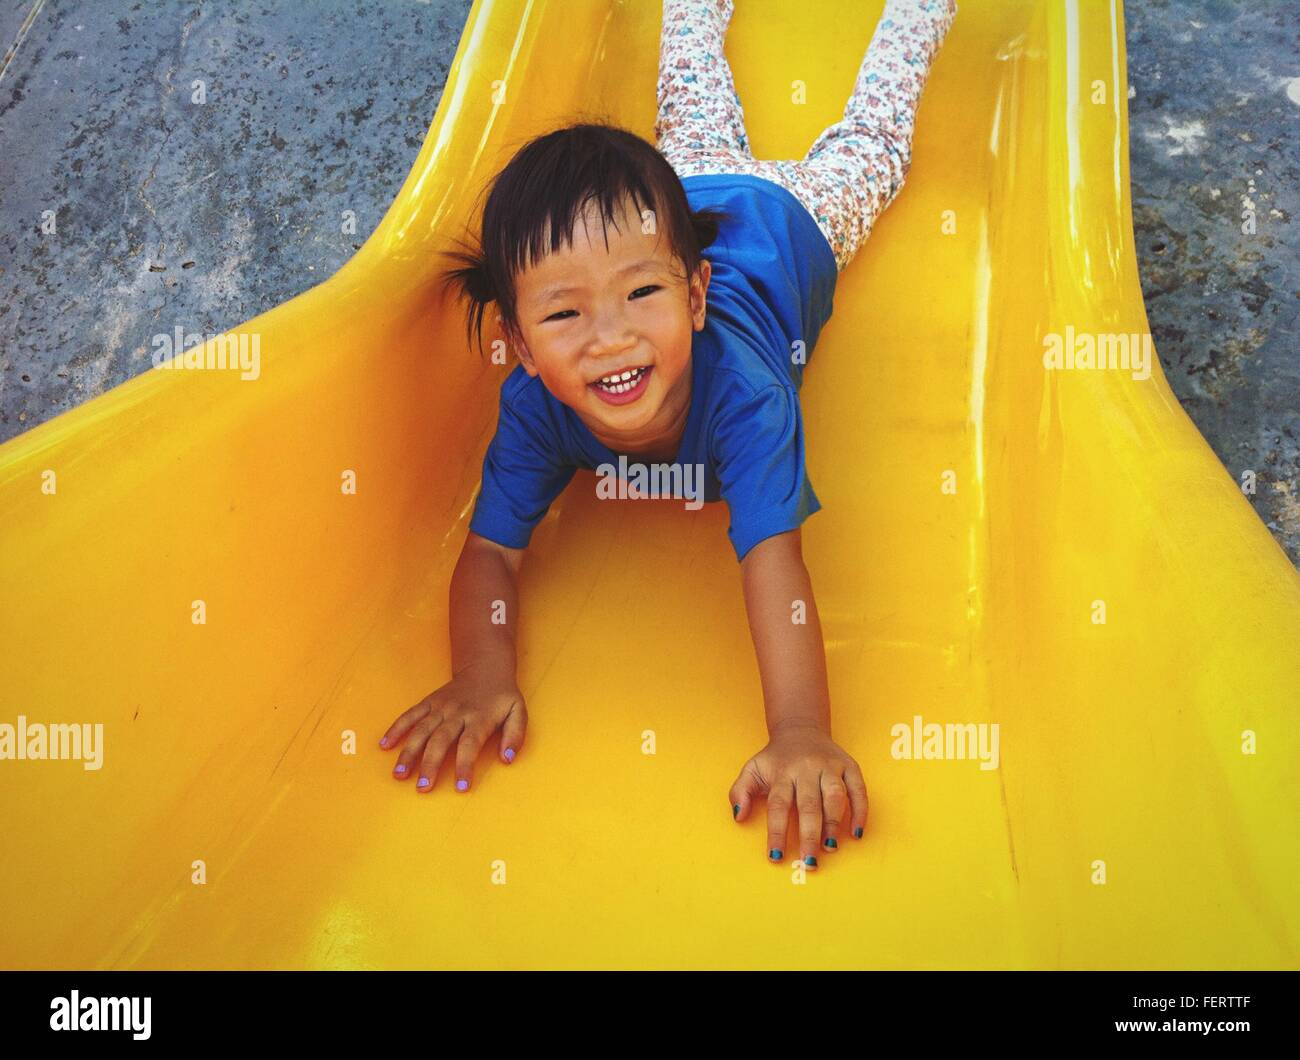 Portrait Of Happy Girl Playing On Yellow Slide In Playground - Stock Image